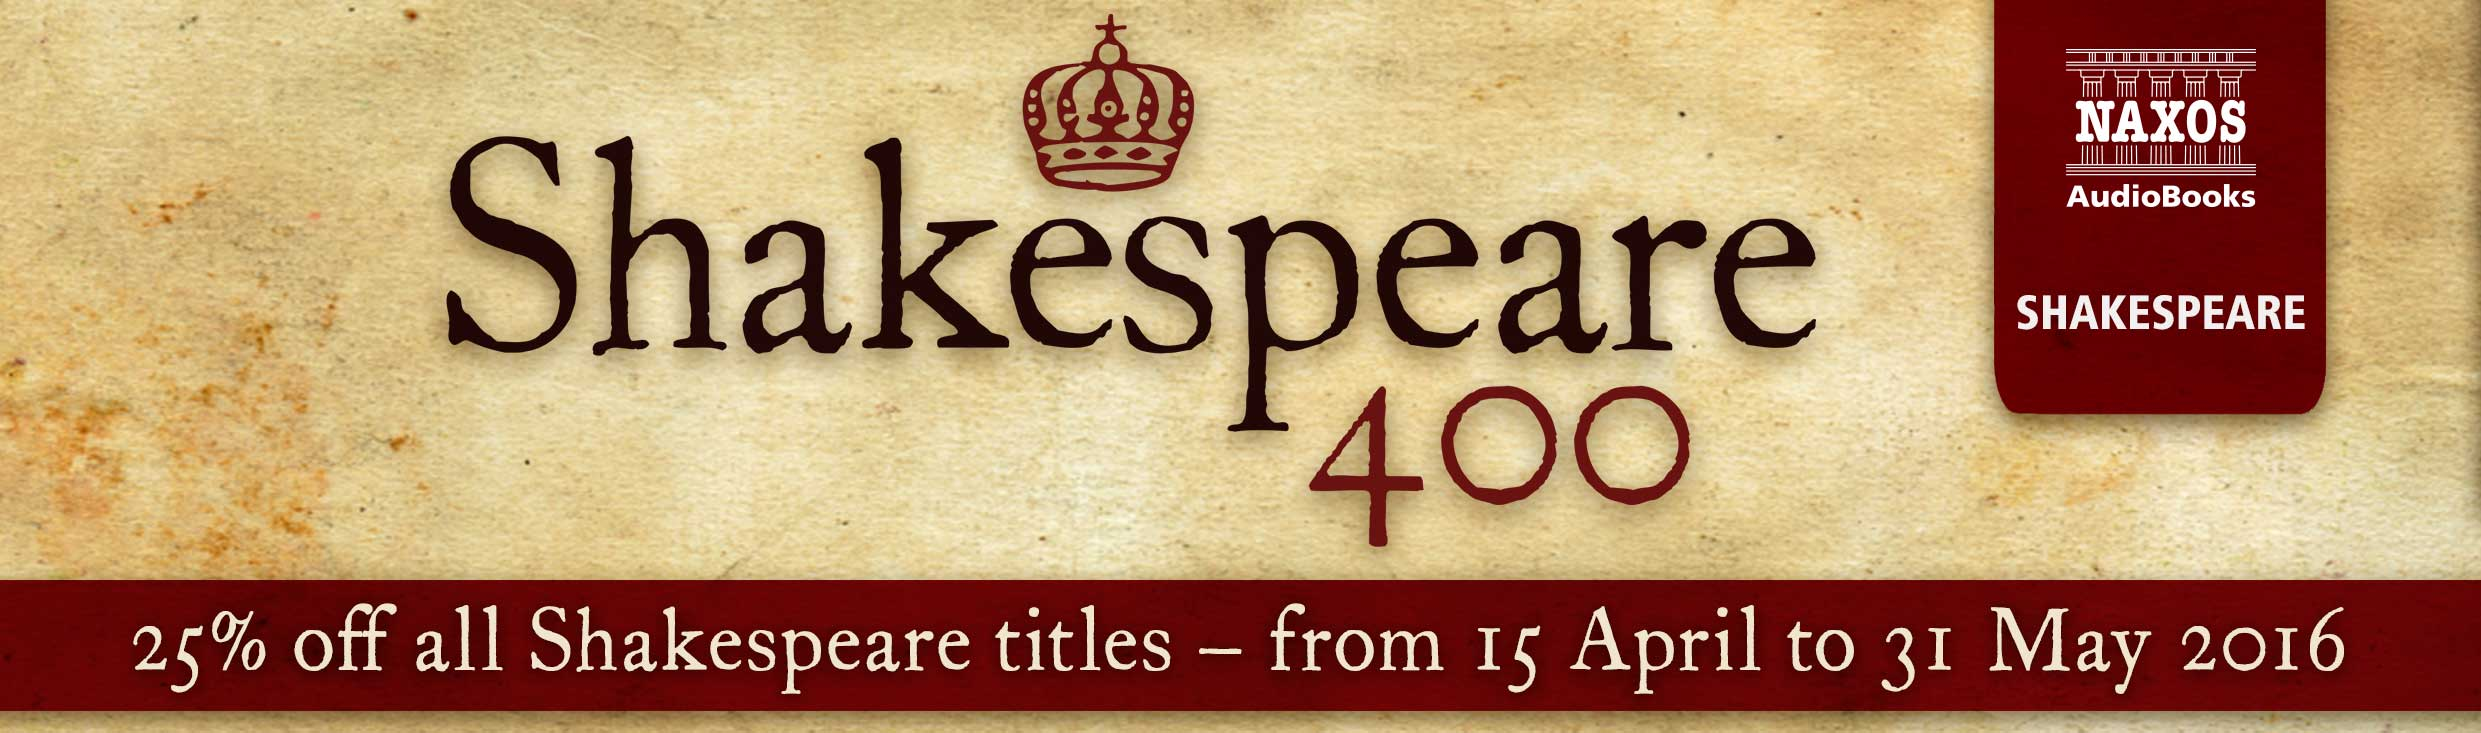 Shakespeare 400 – 25% off all titles